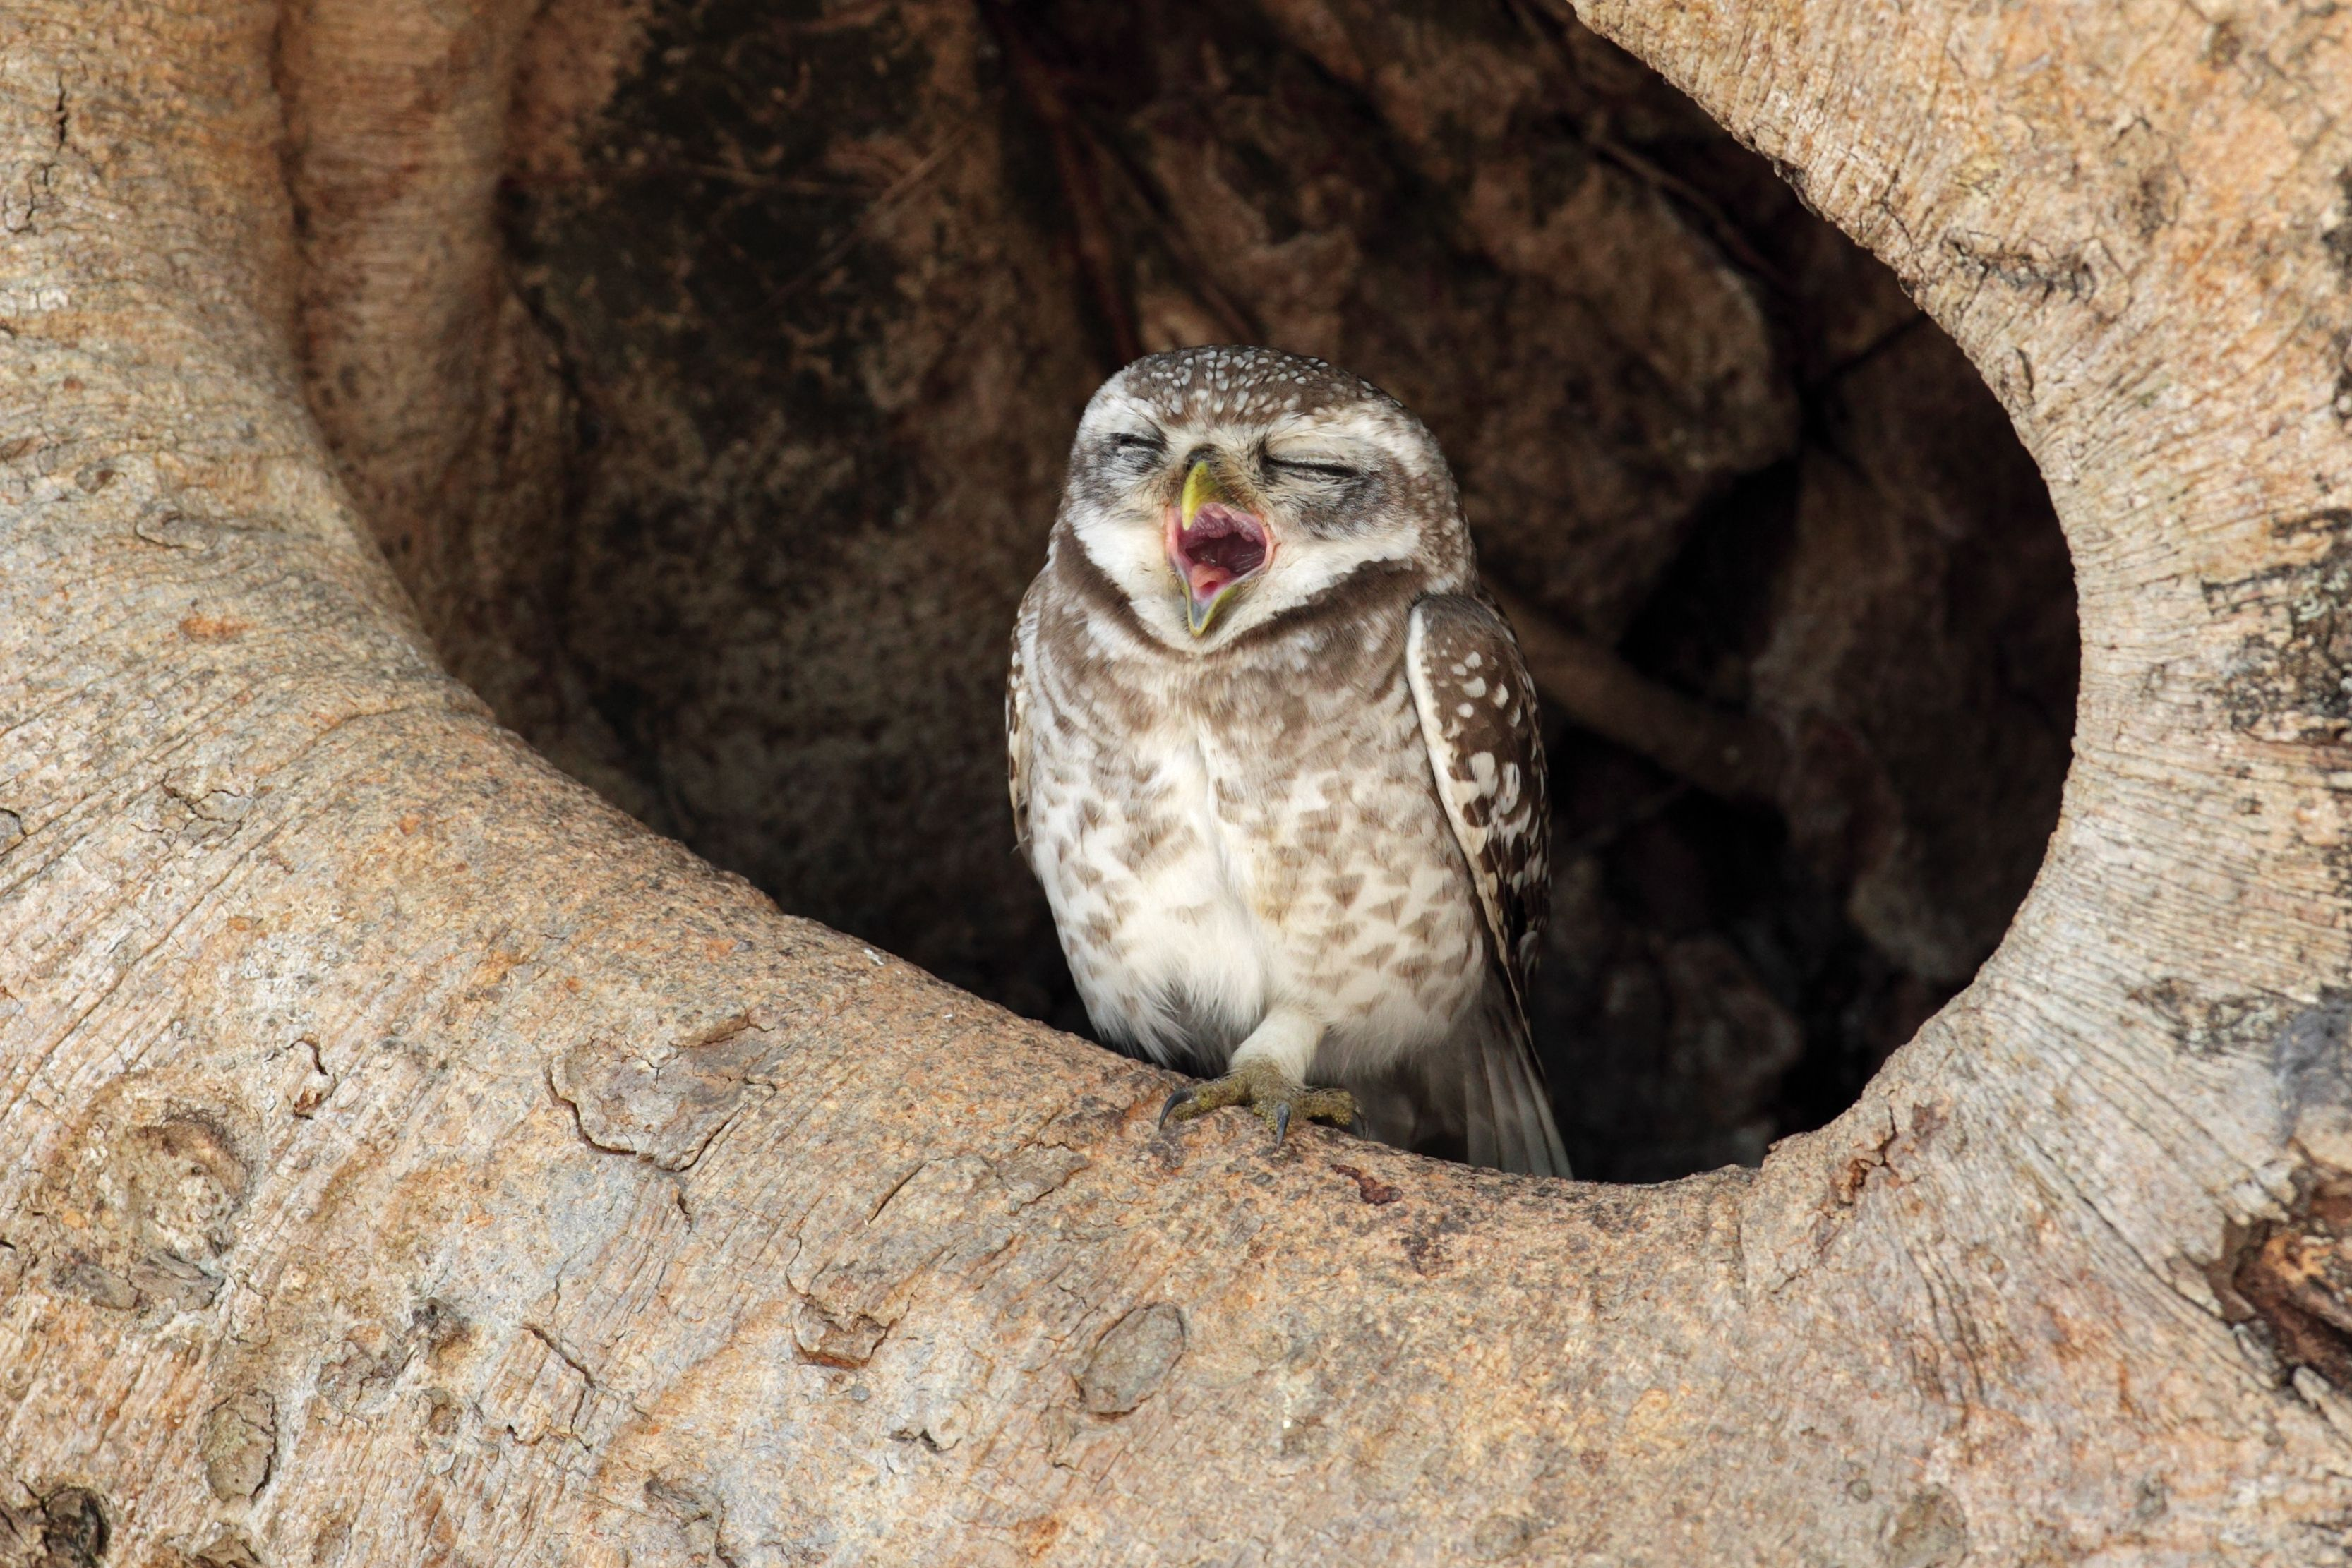 yawing owlet at Kanha National Park.An owl is considered